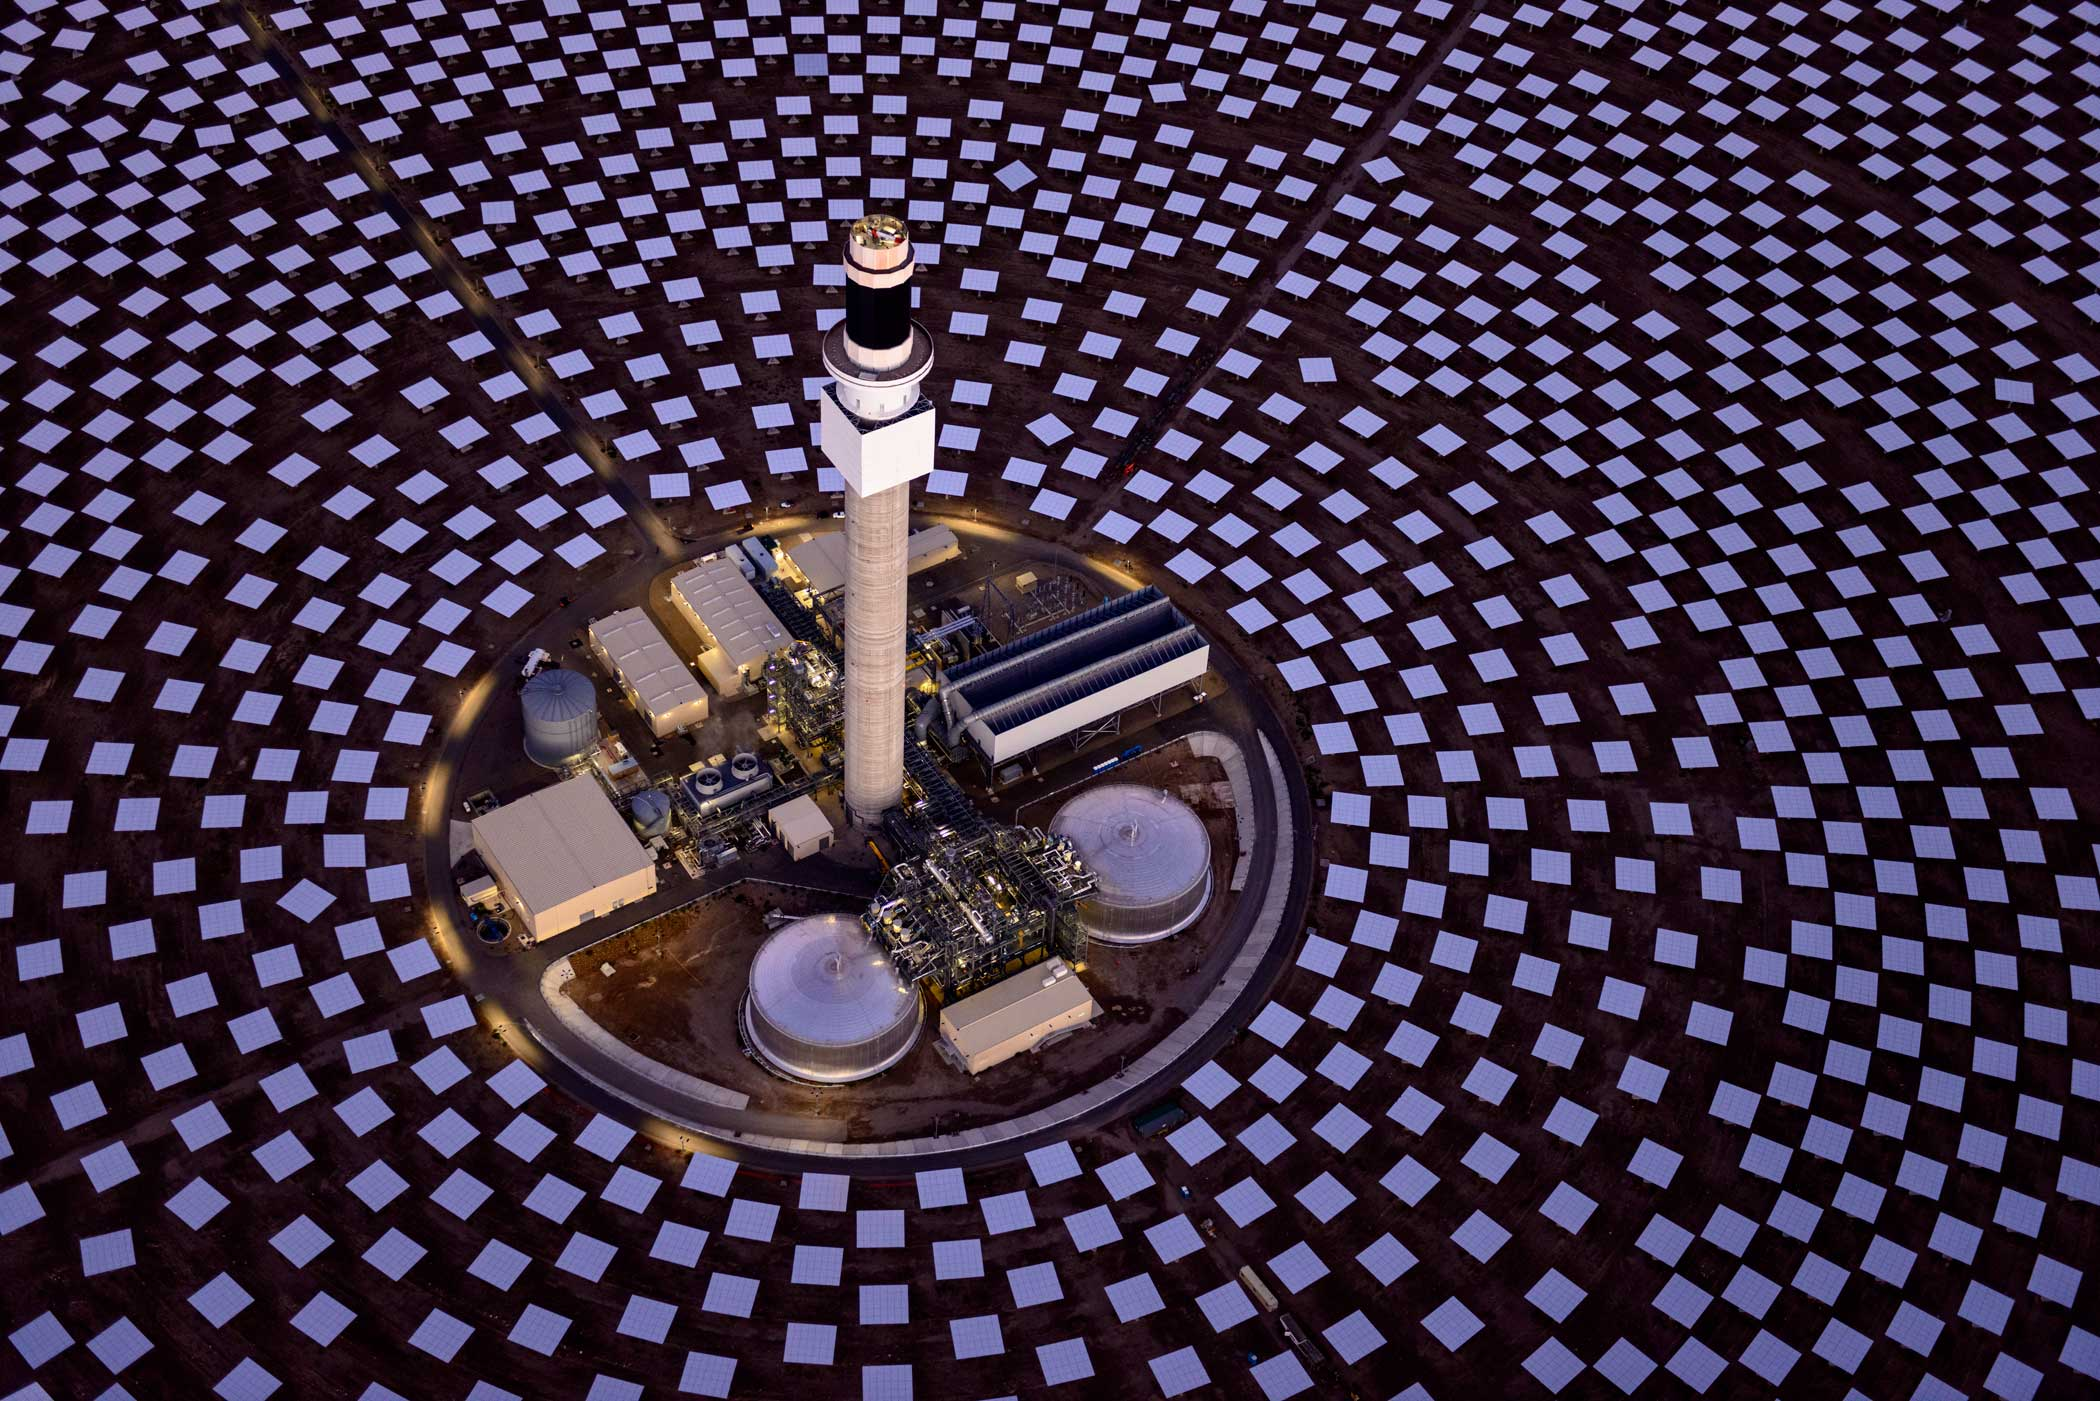 The facility is the first large-scale concentrated solar plant in the U.S.